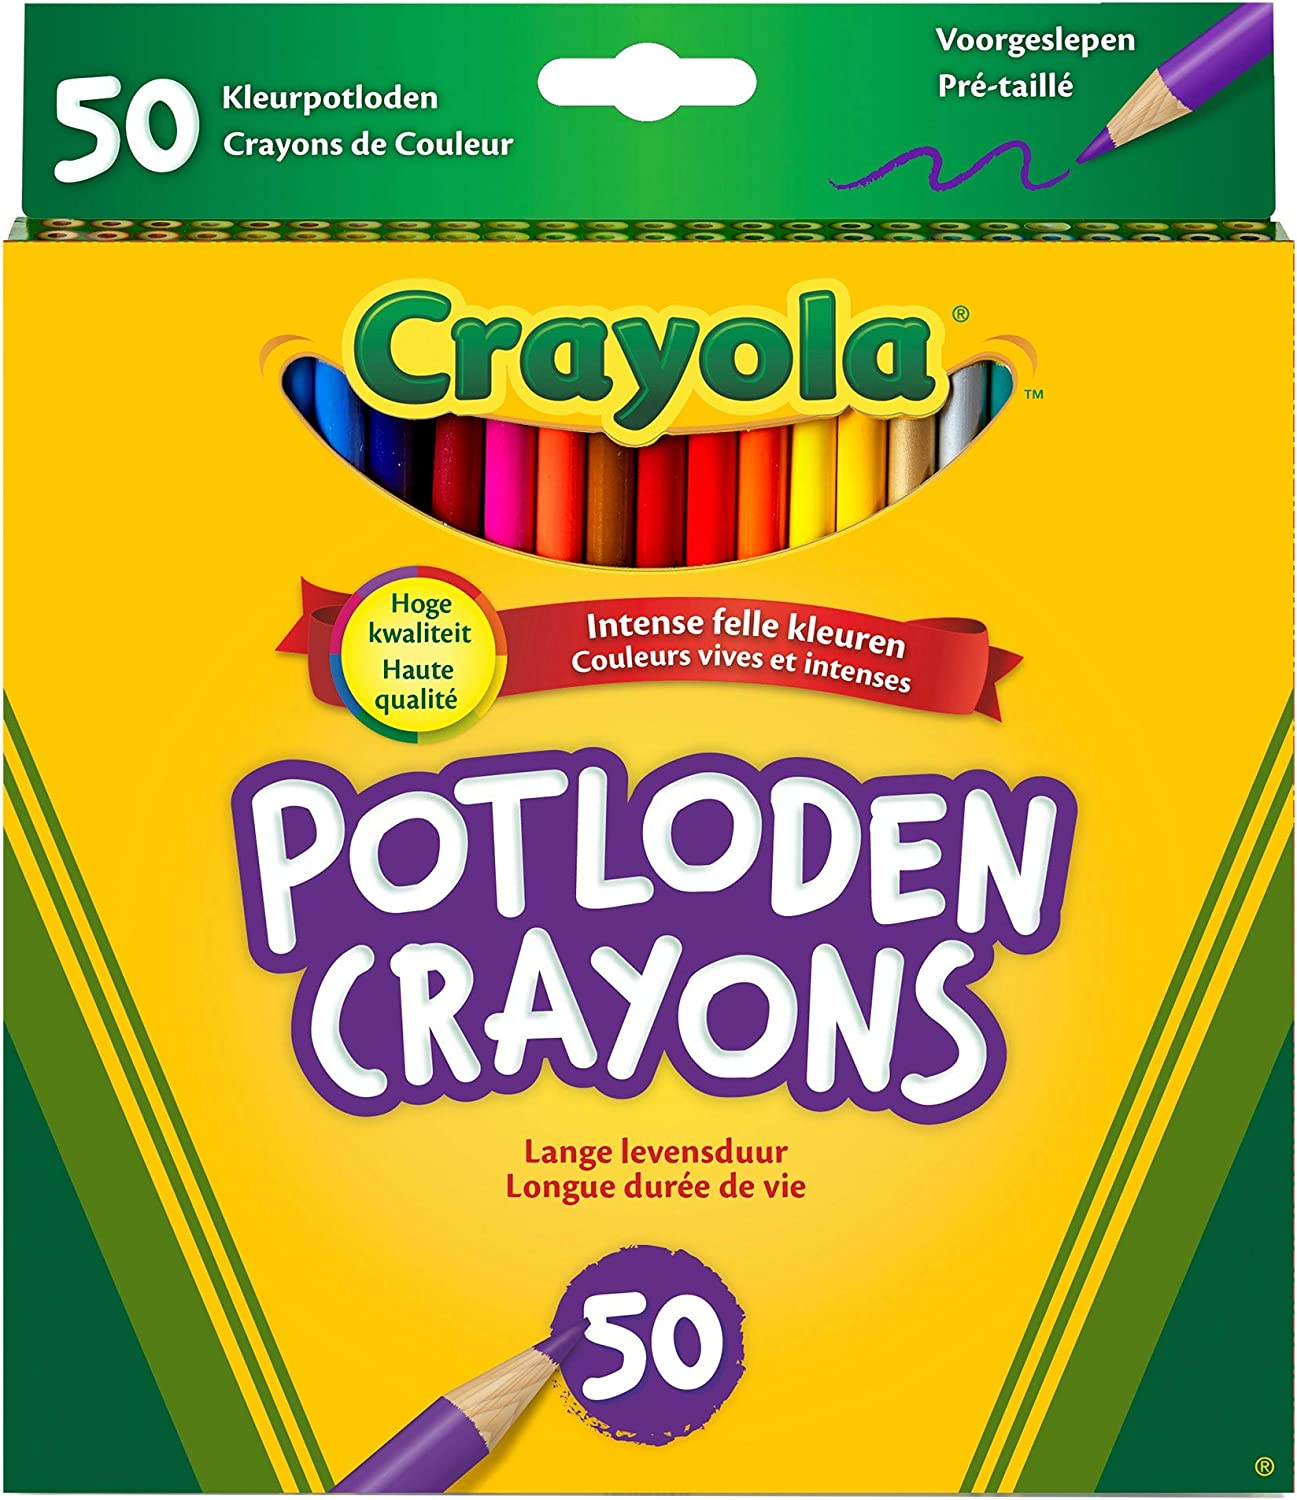 Gift Crayola 100 Colored Pencils with 16 Color Fx Exclusive